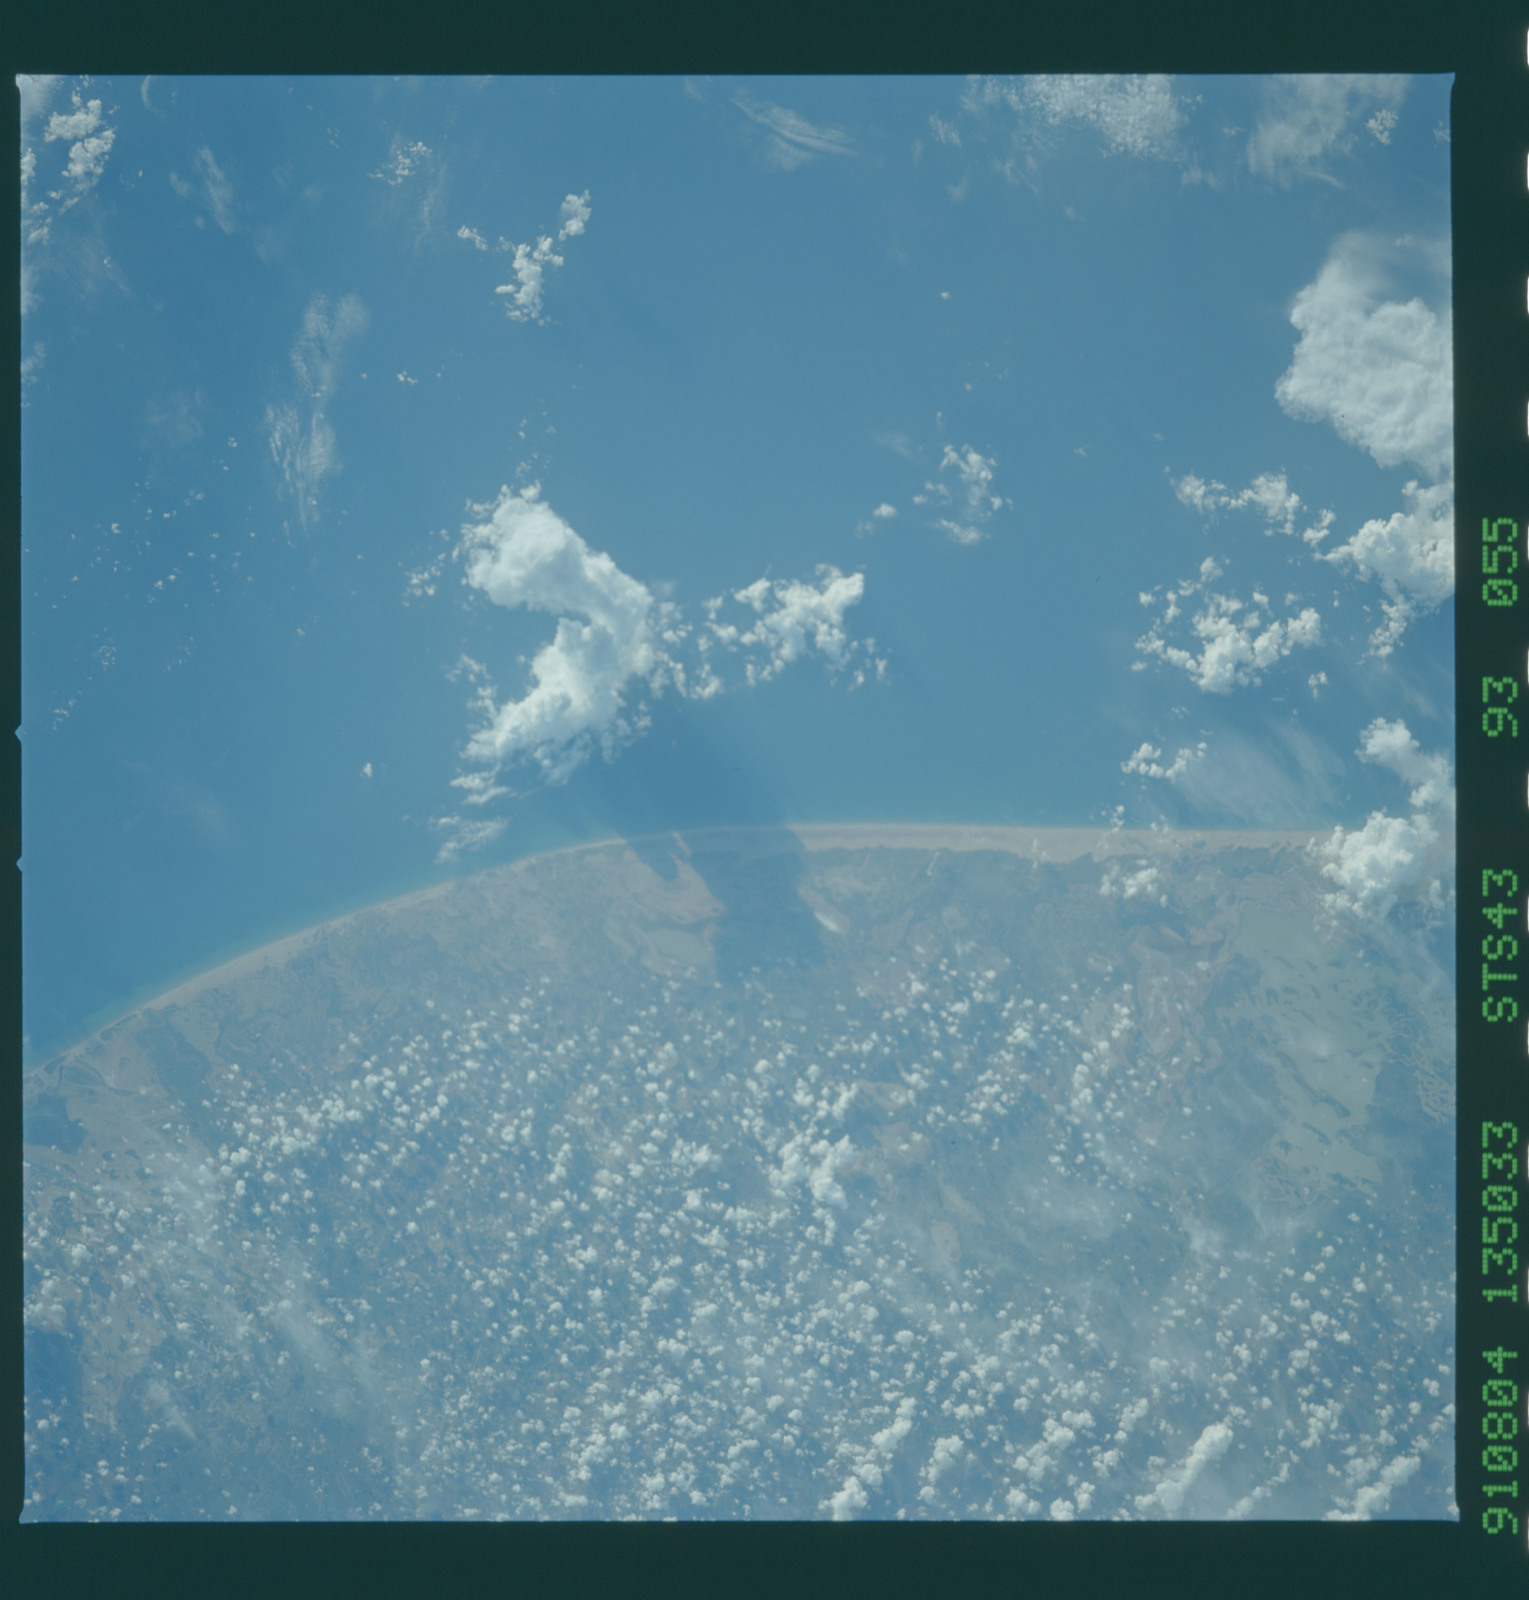 S43-93-055 - STS-043 - STS-43 earth observations